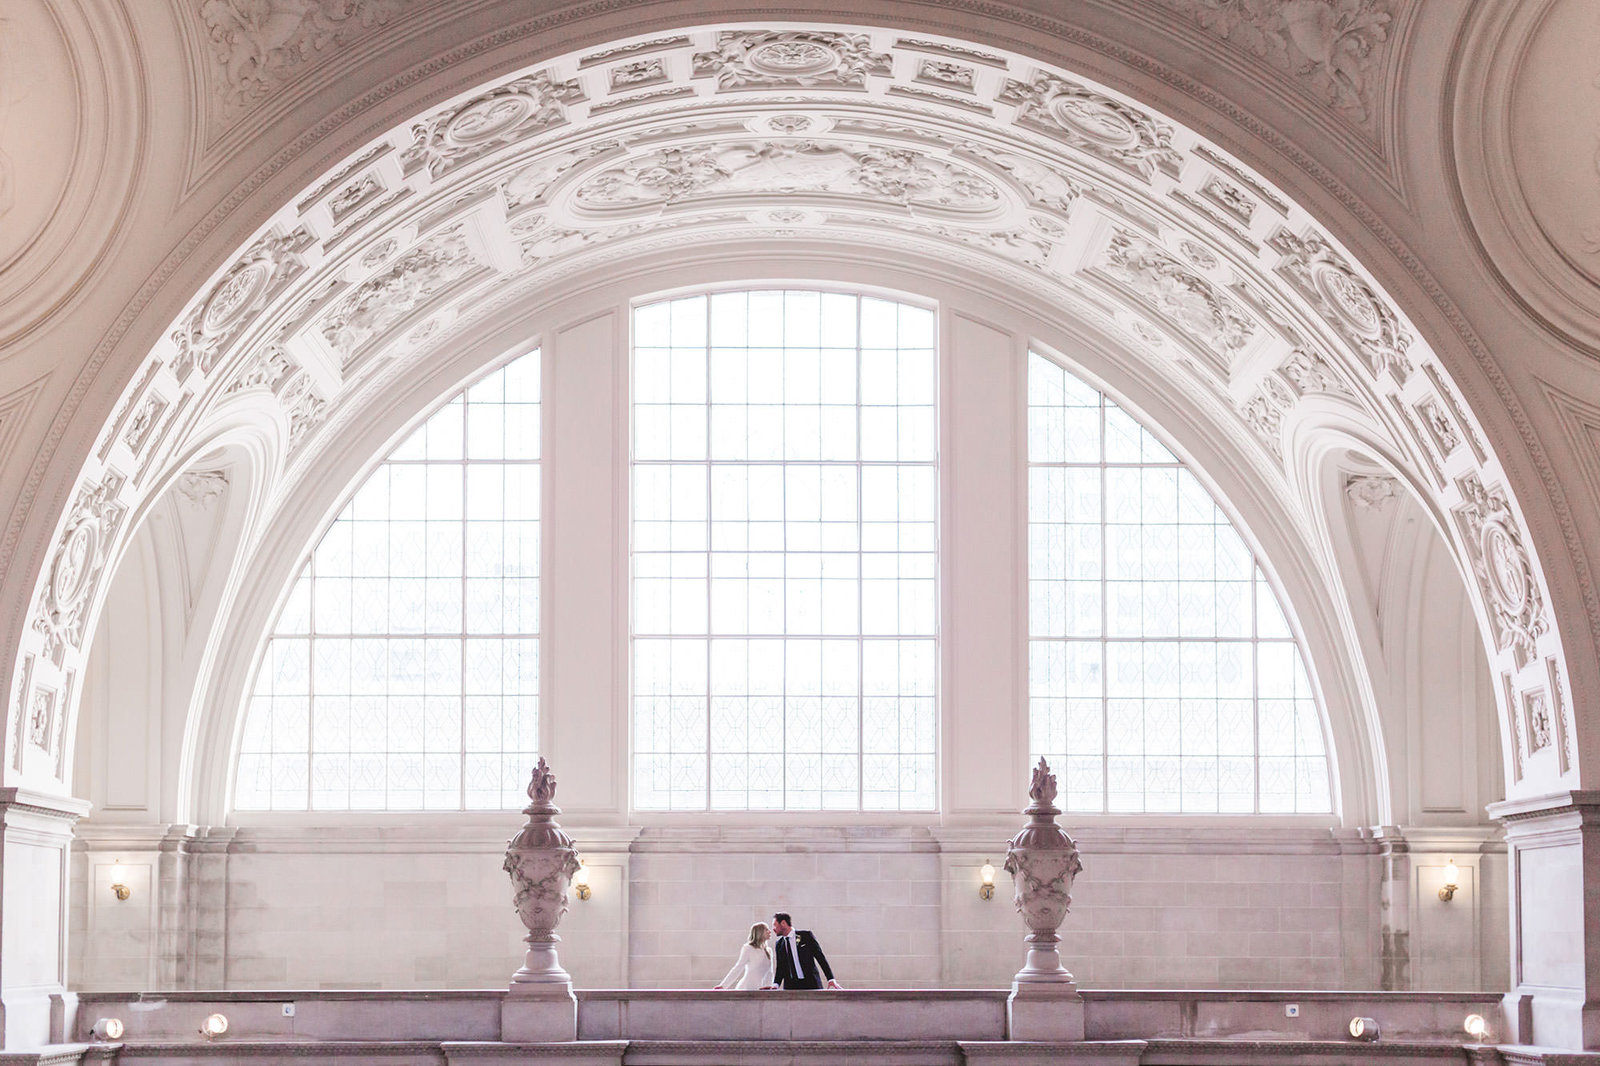 4th floor couple from afar framed by epic arch